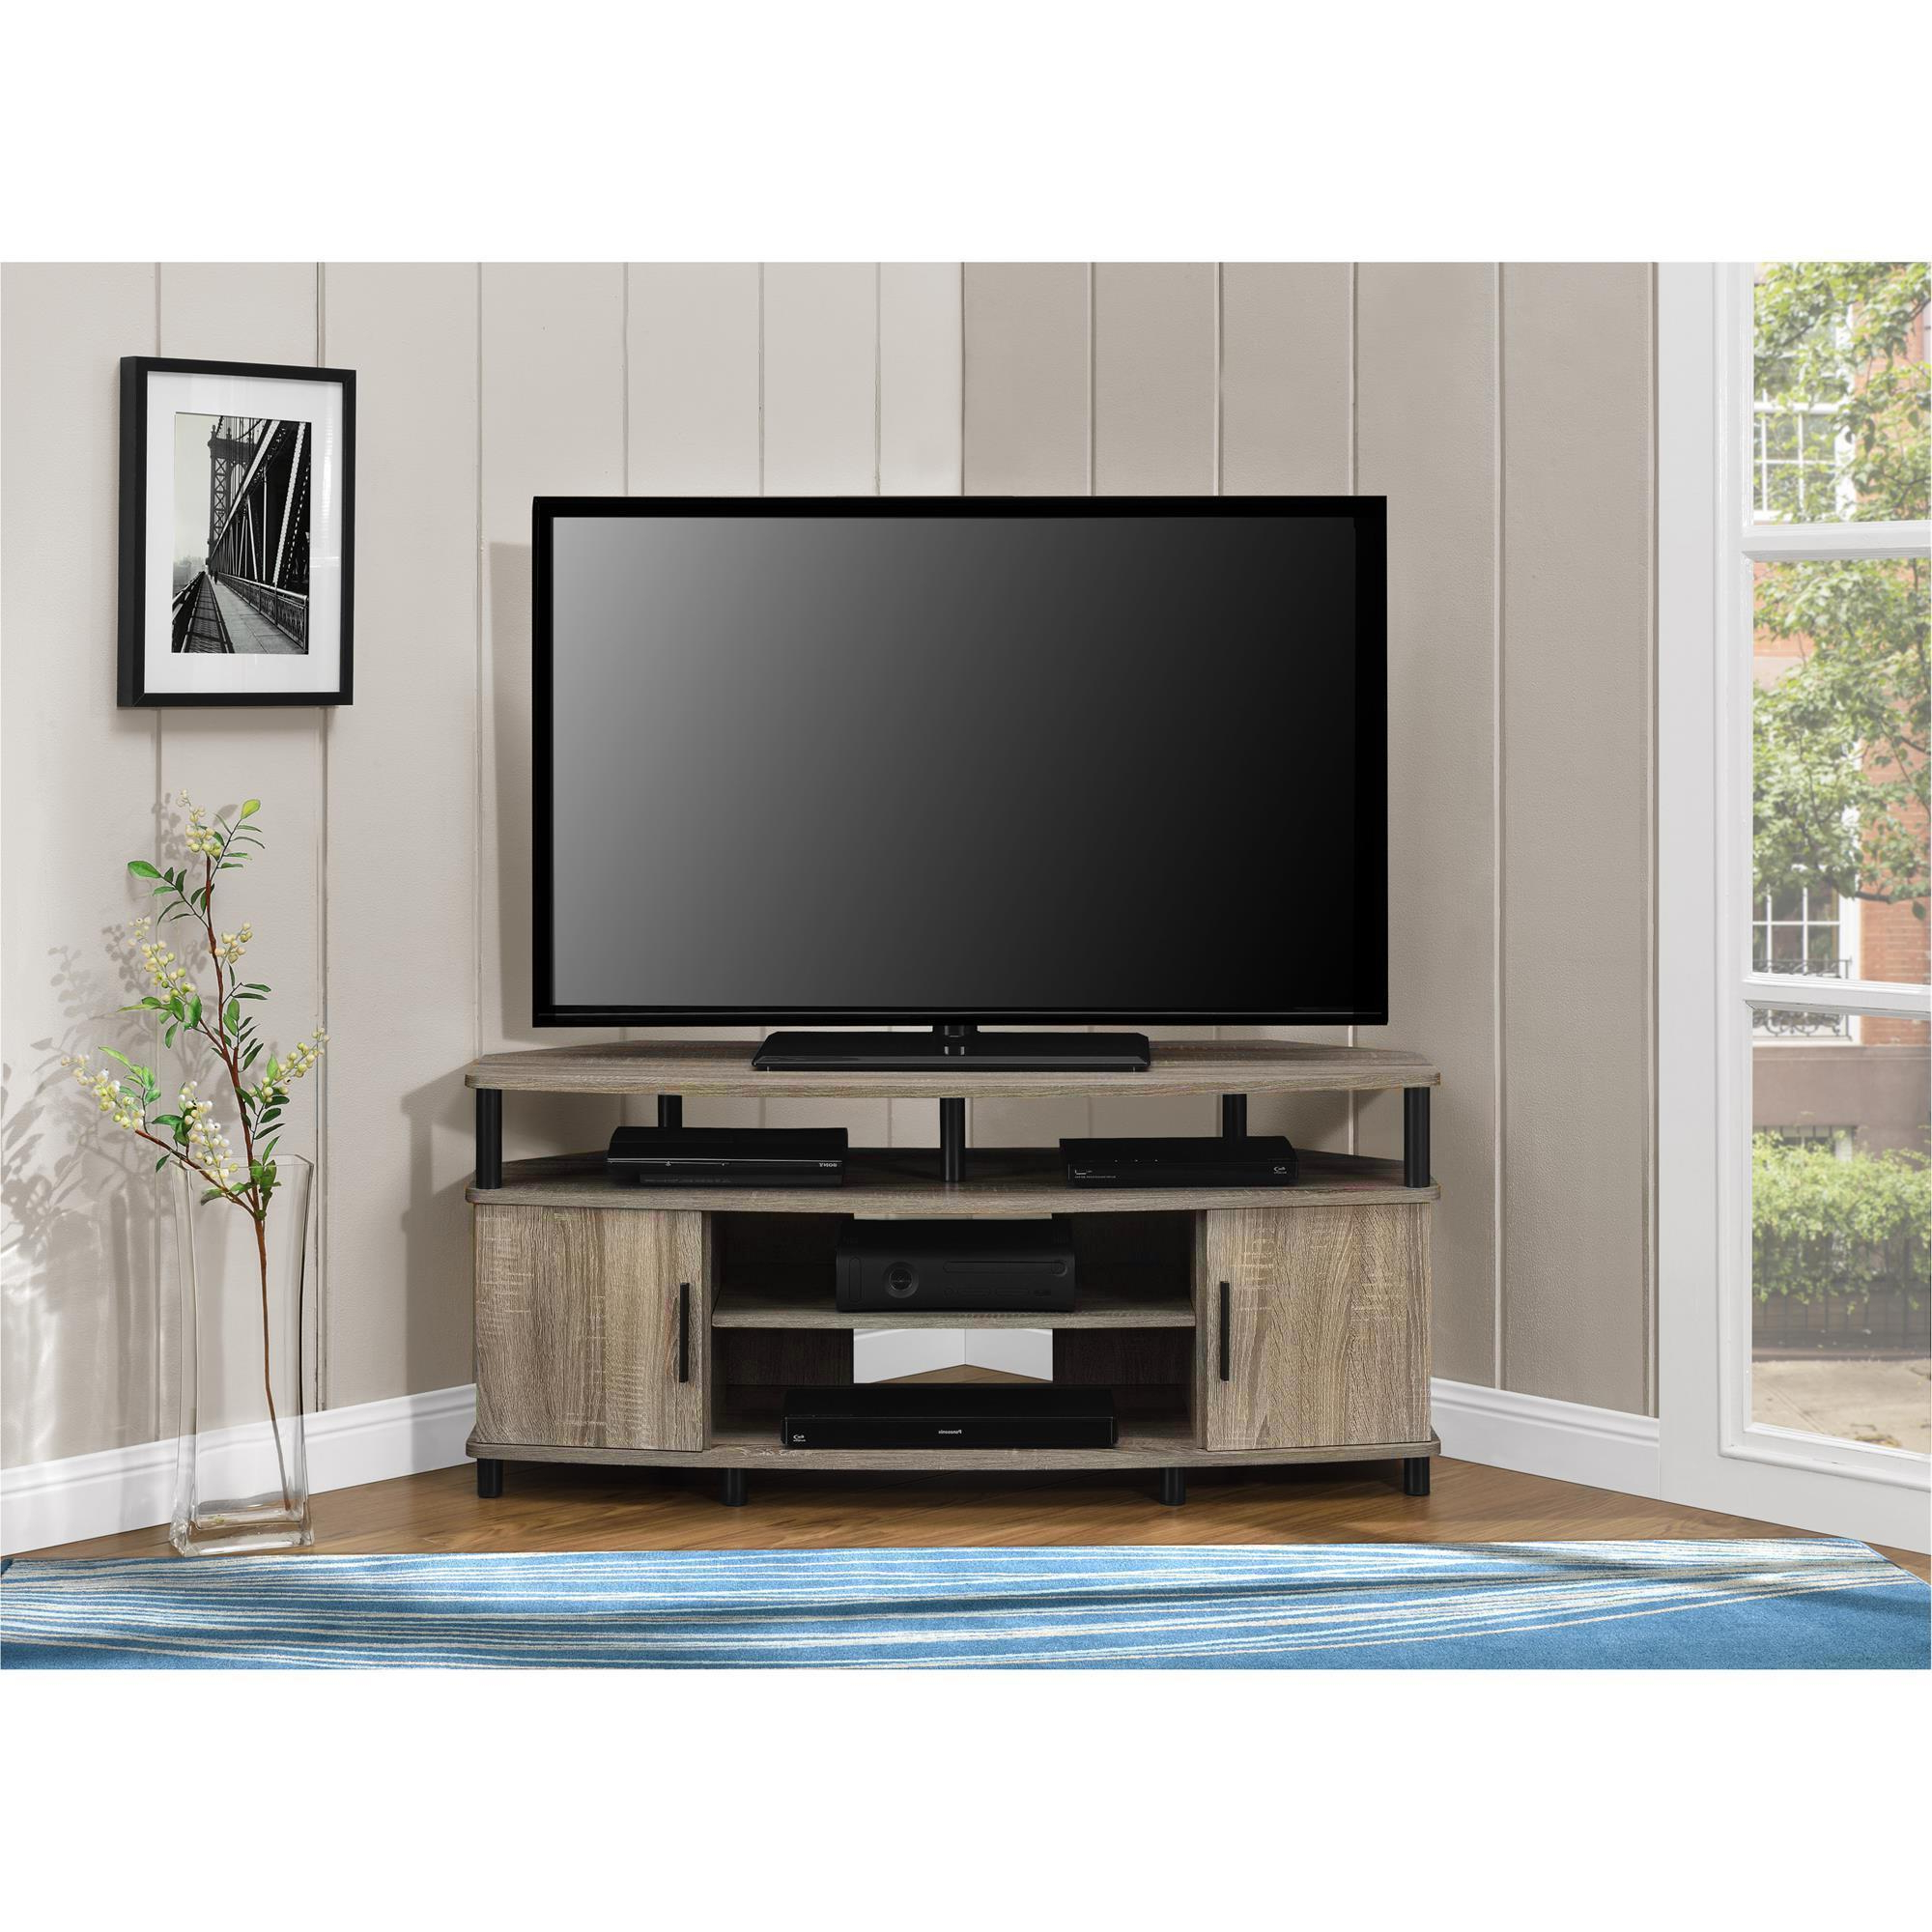 Shop Ameriwood Home Carson 50 Inch Sonoma Oak Corner Tv Stand – Free With Regard To Century Blue 60 Inch Tv Stands (View 13 of 20)